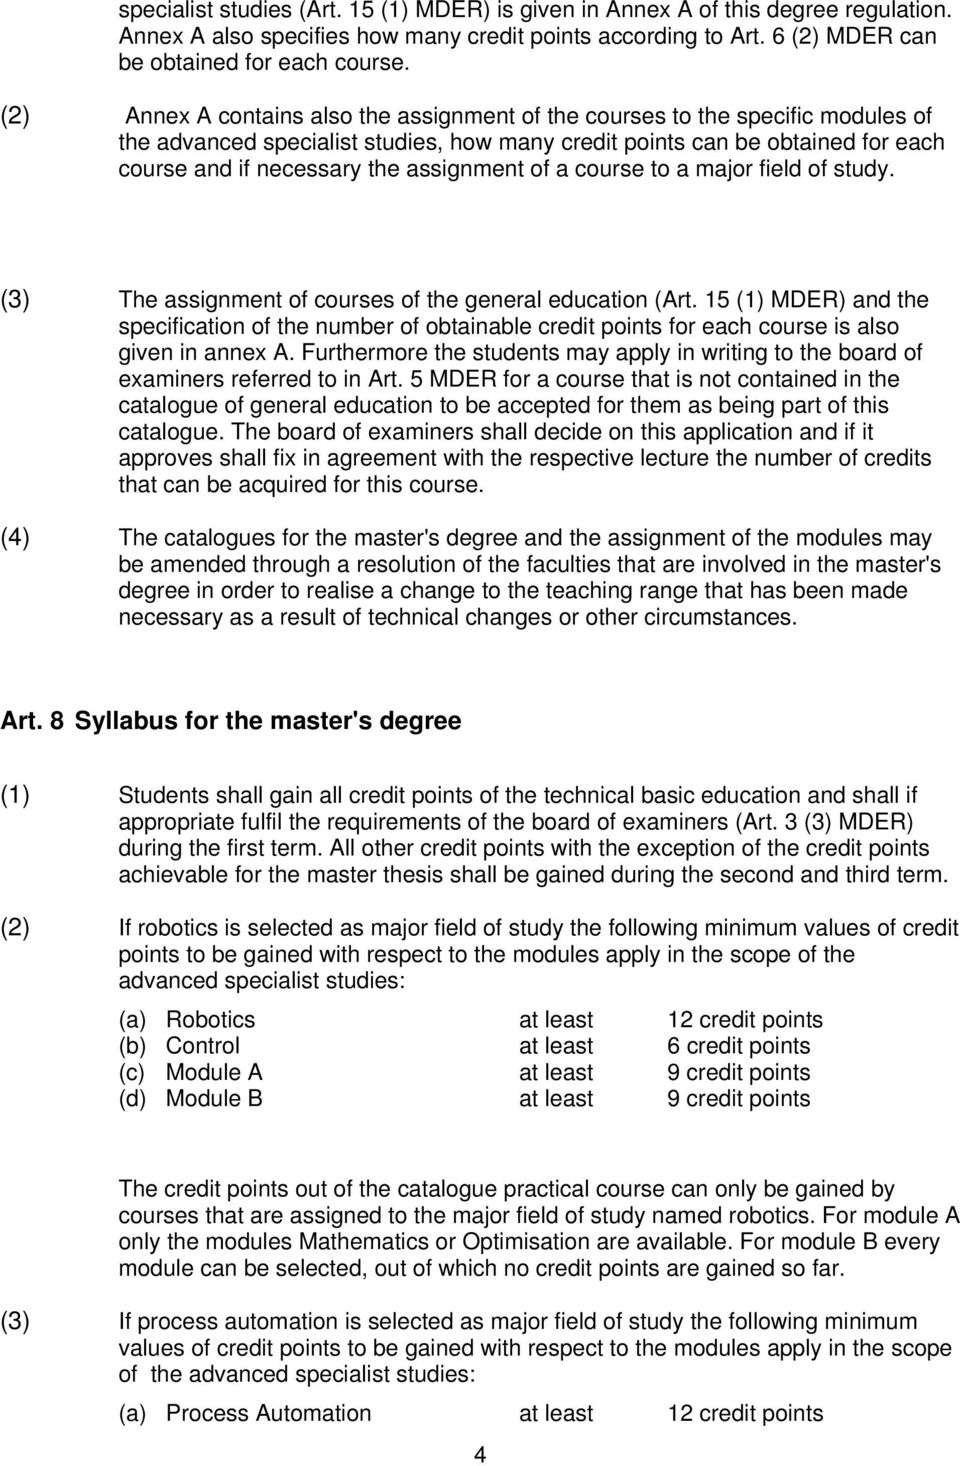 Degree Regulations For The Master S Degree Automation And Robotics